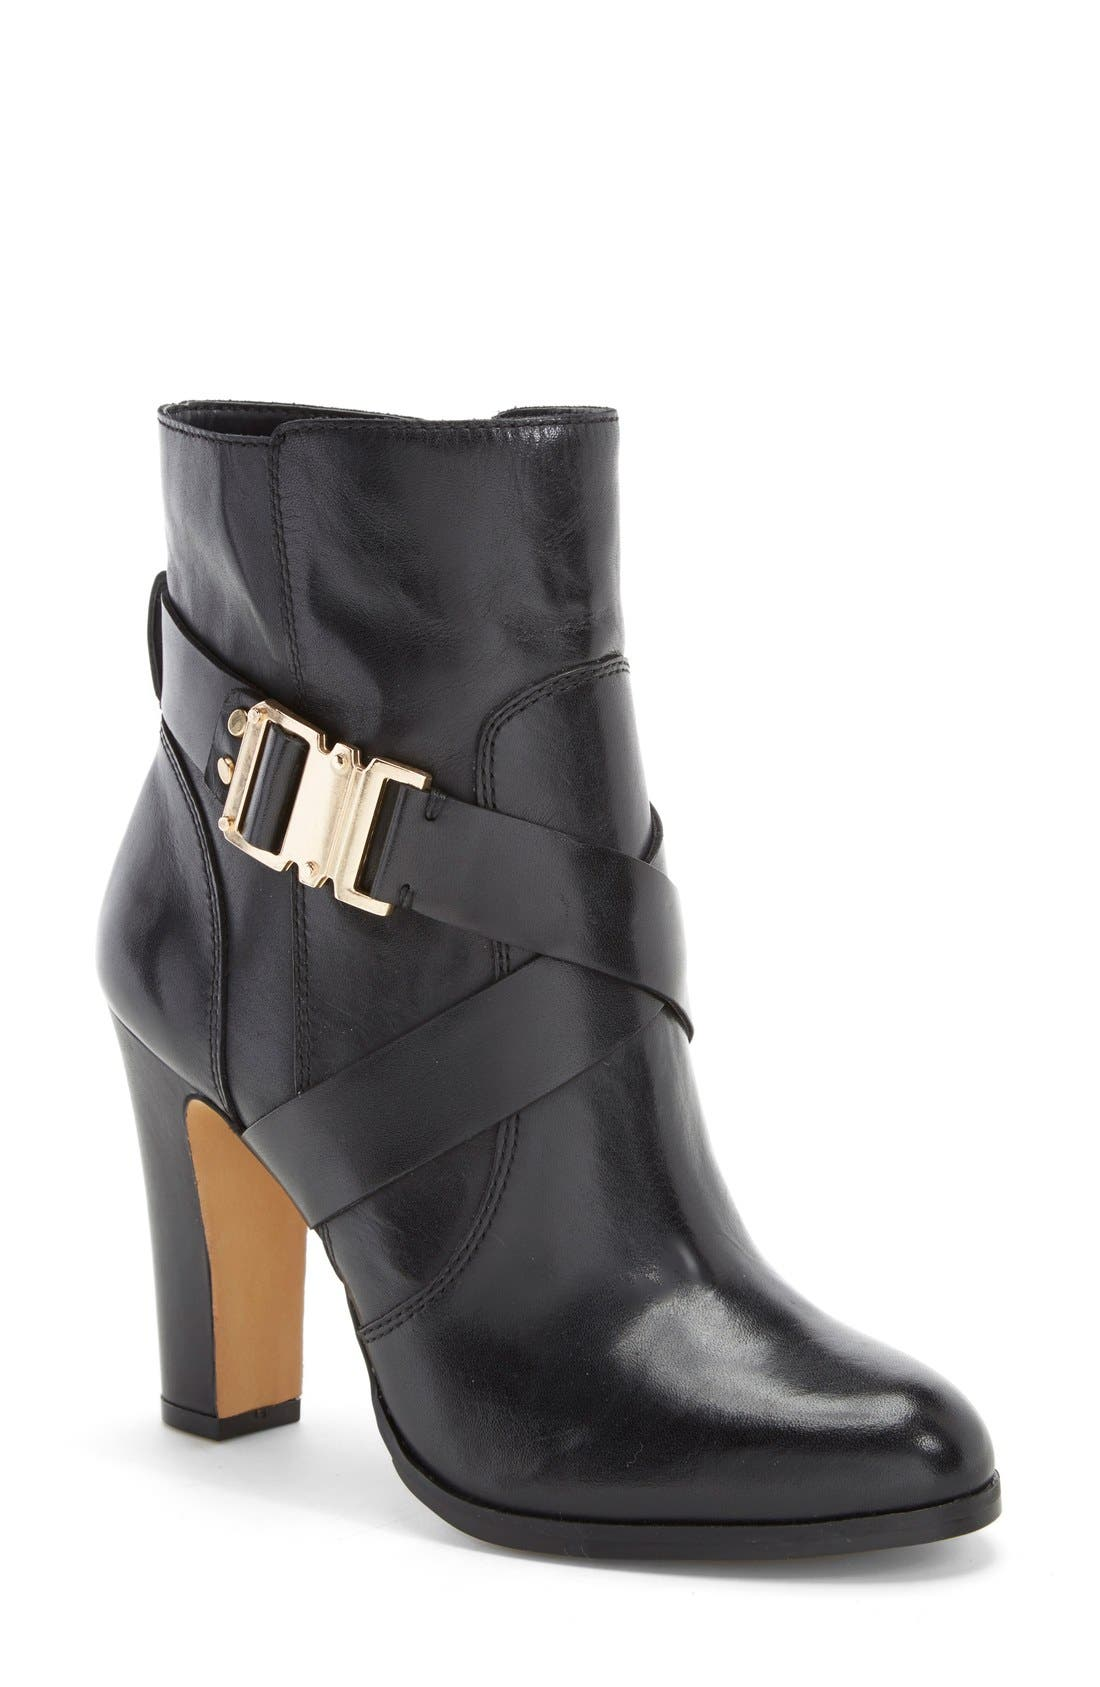 Alternate Image 1 Selected - Vince Camuto 'Connolly' Belted Boot (Women) (Online Only)